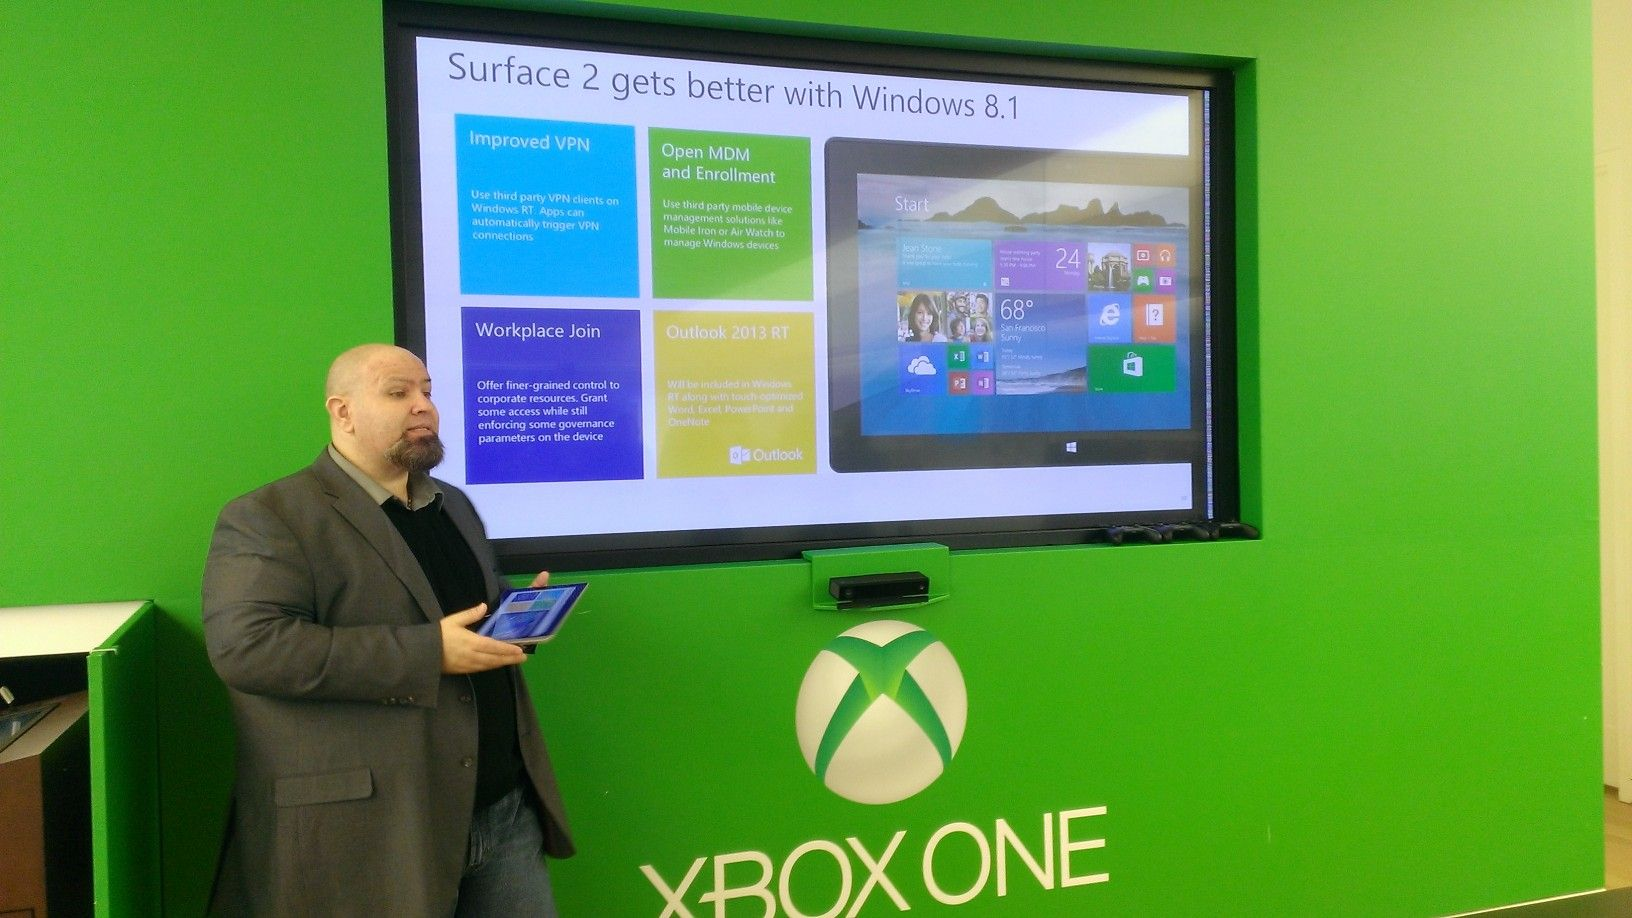 Jeff-Surface2-MVP-Talk-APR2014.jpg